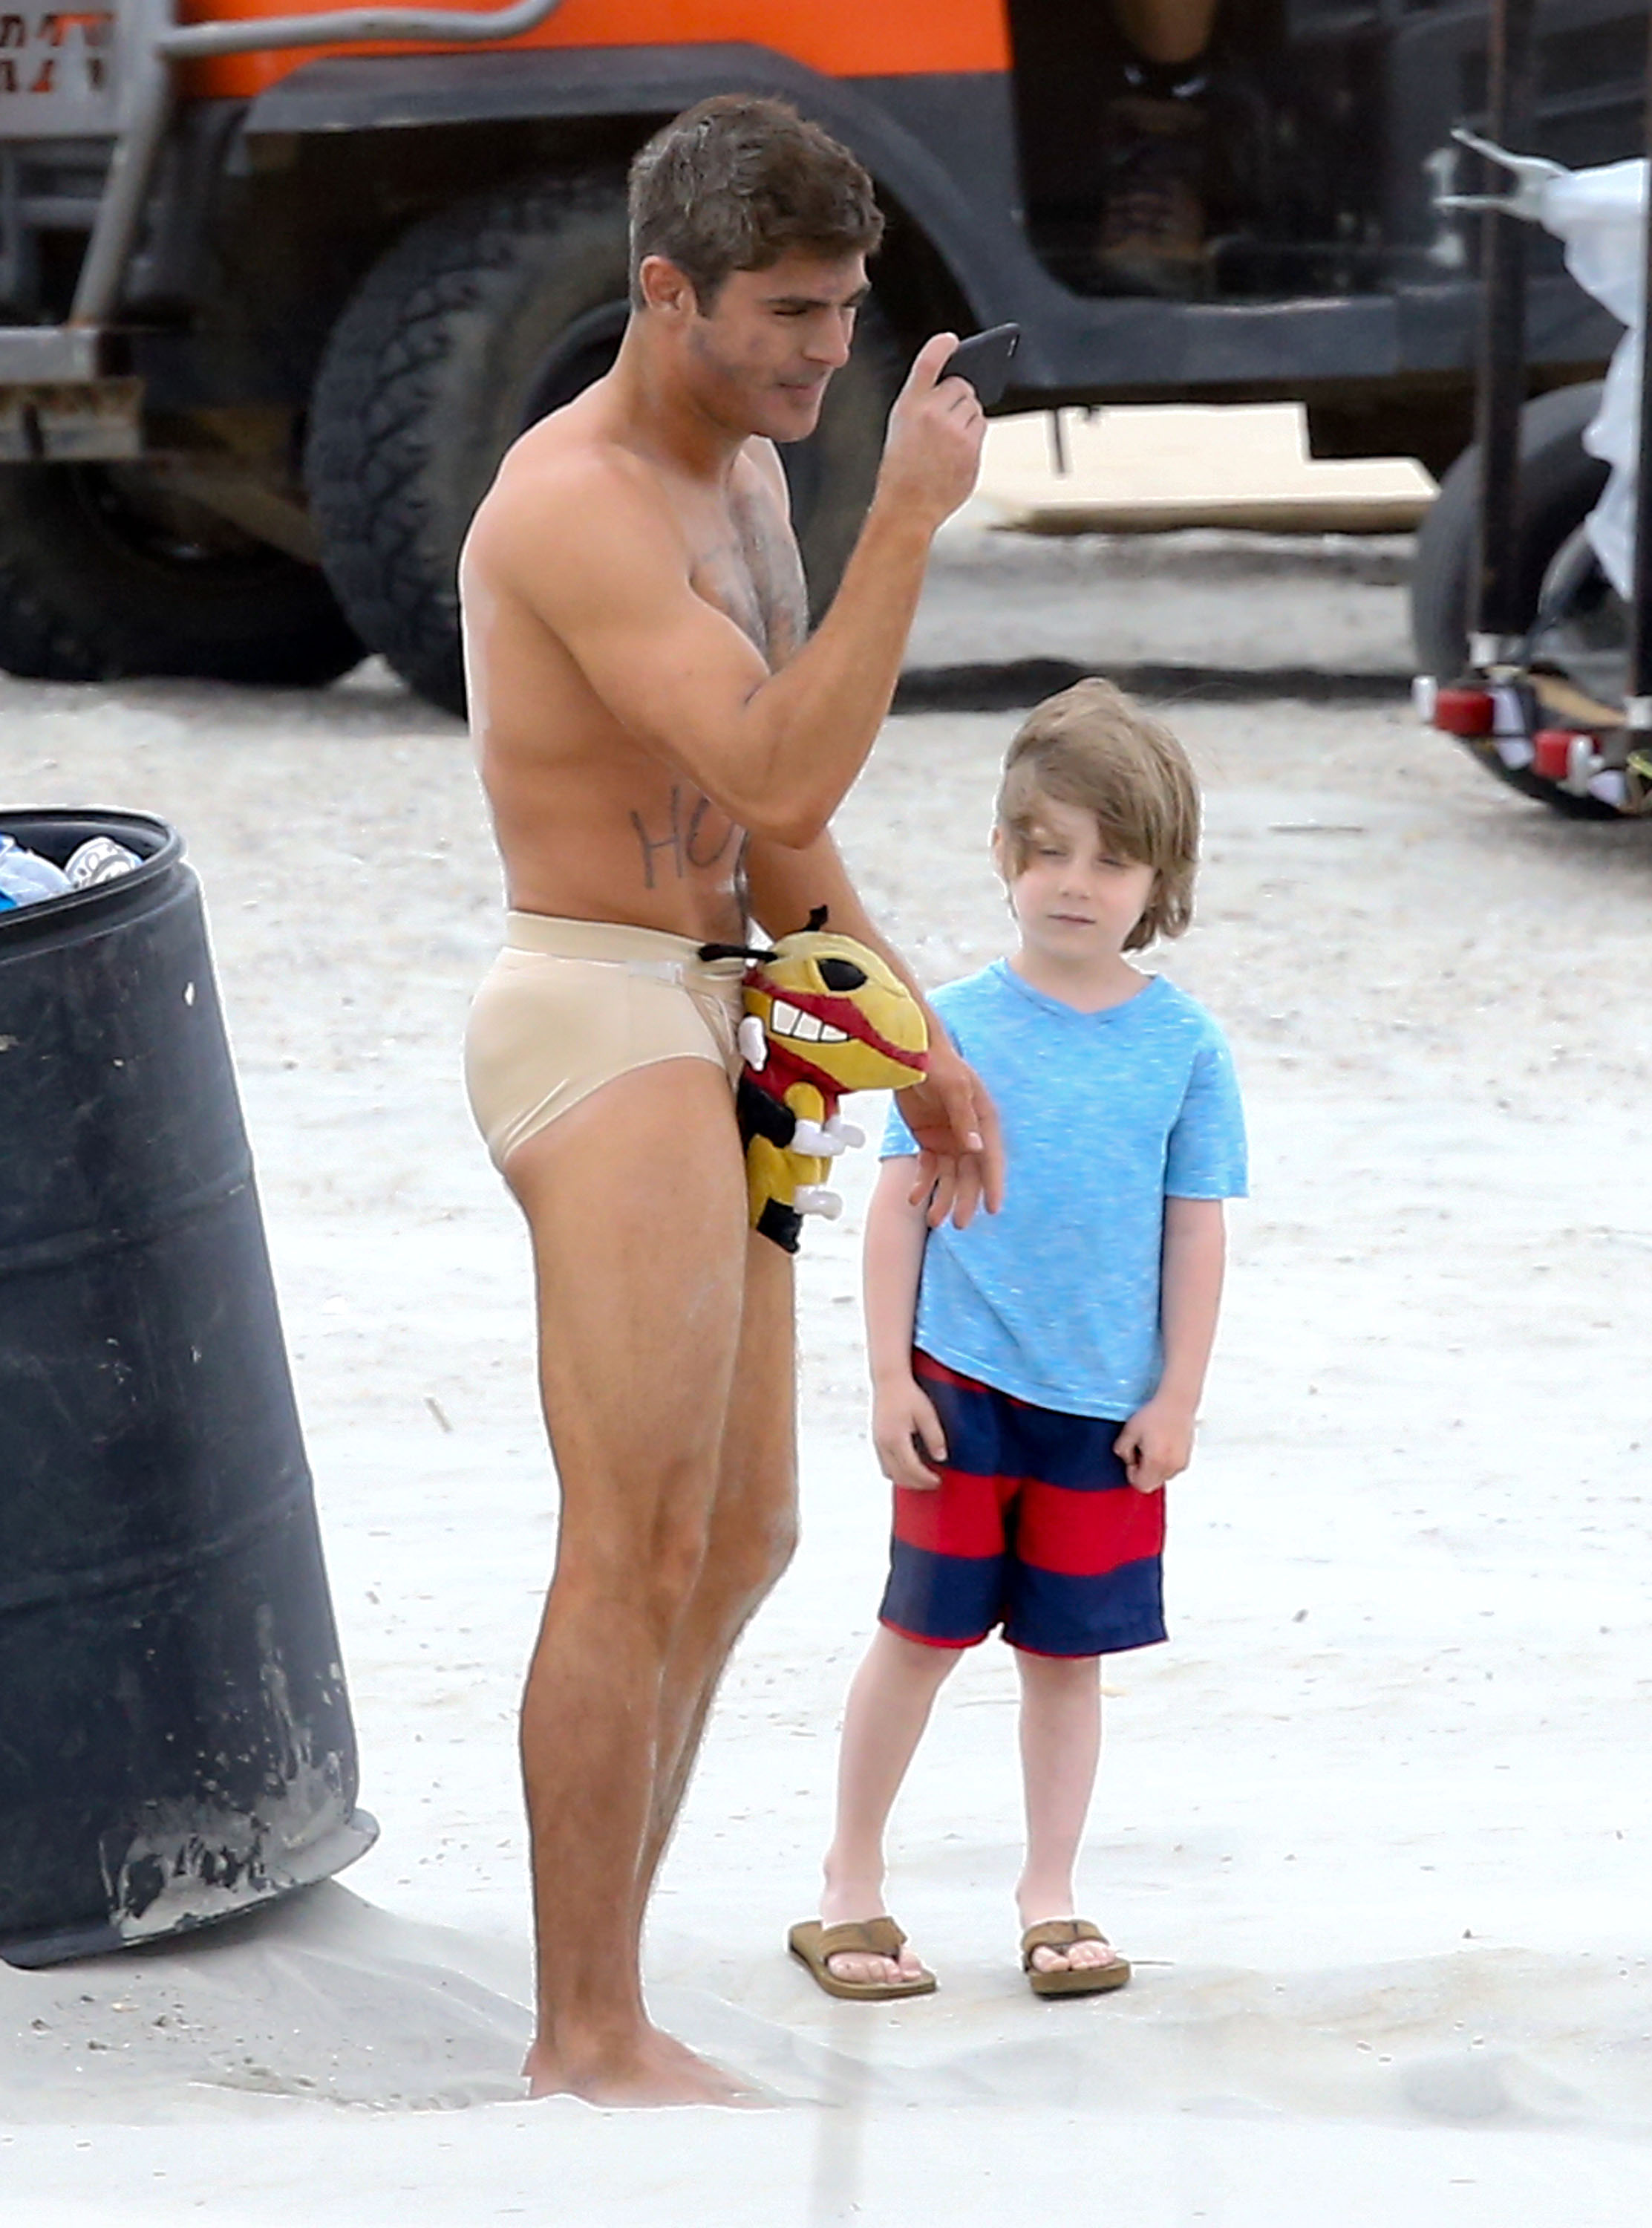 Zac efron fake nude body that would